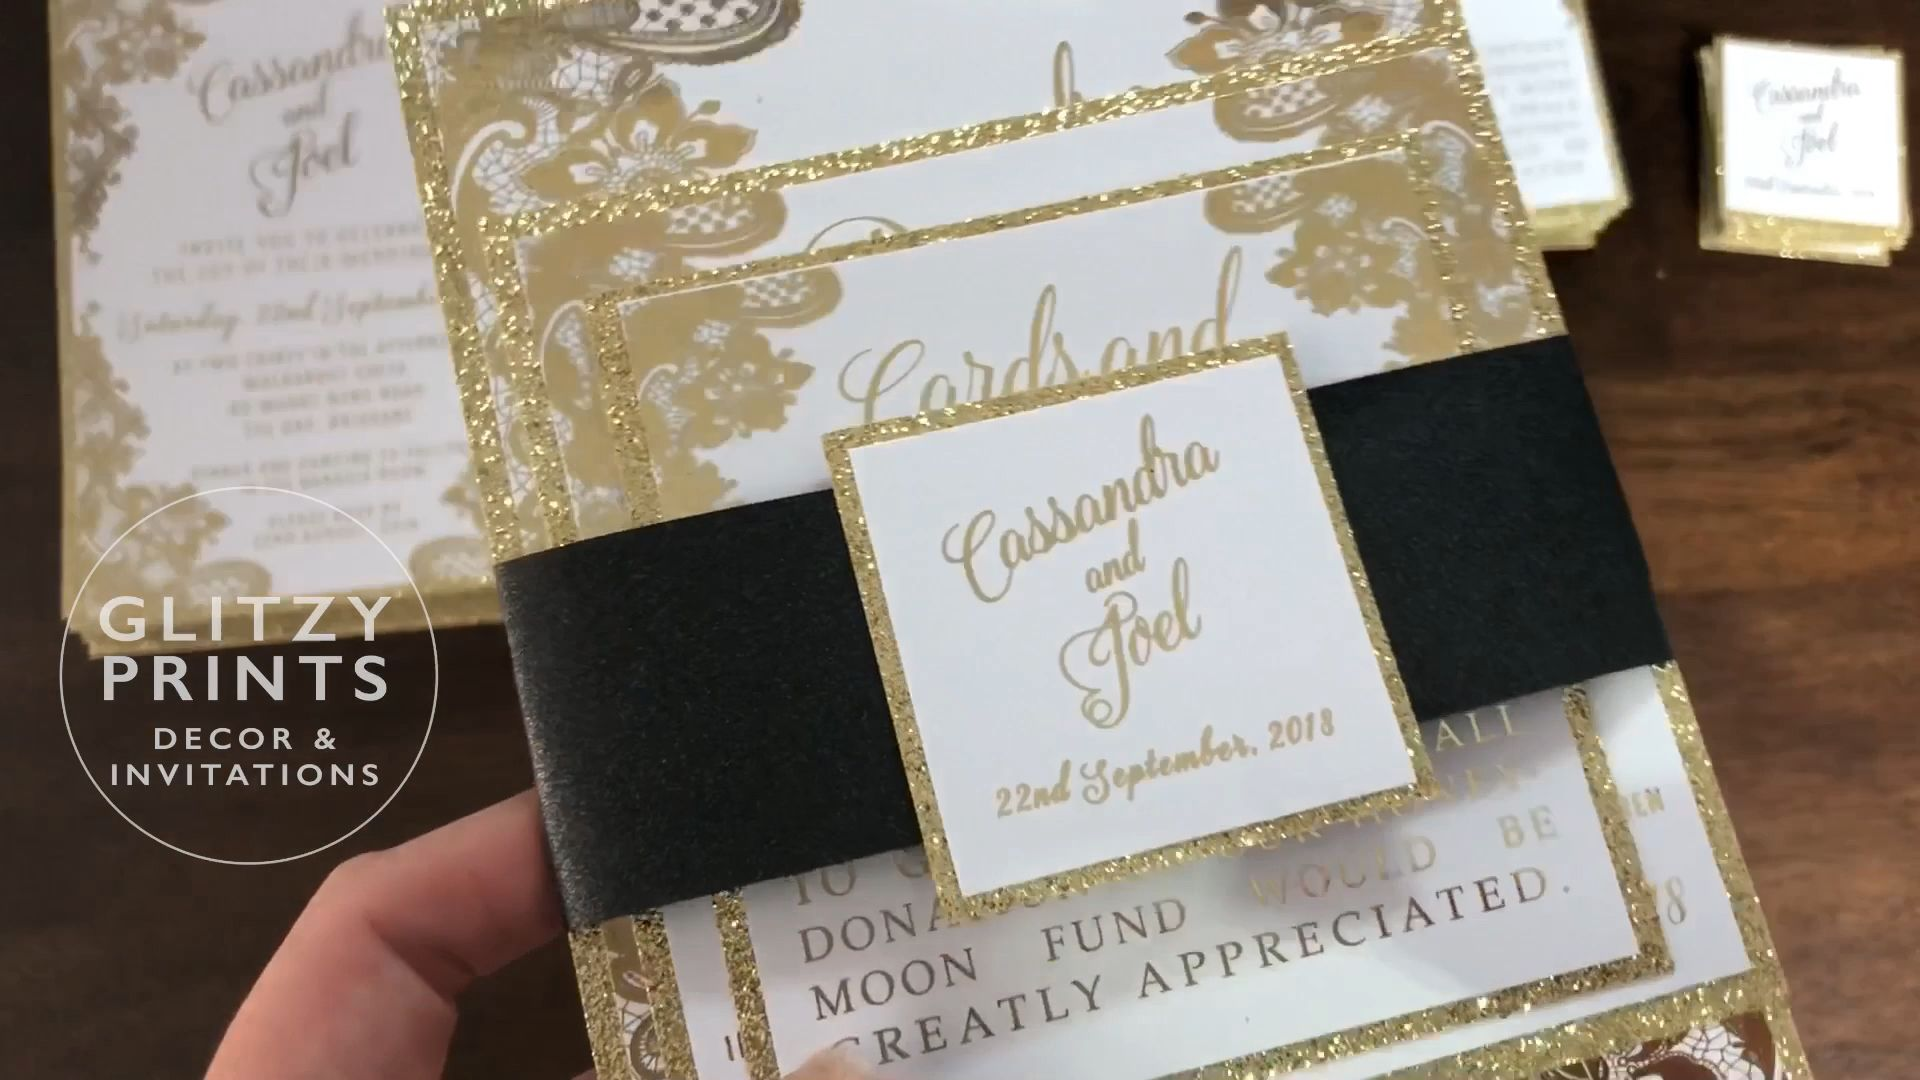 Glitzy Prints offer a beautiful range of affordable invitations ...